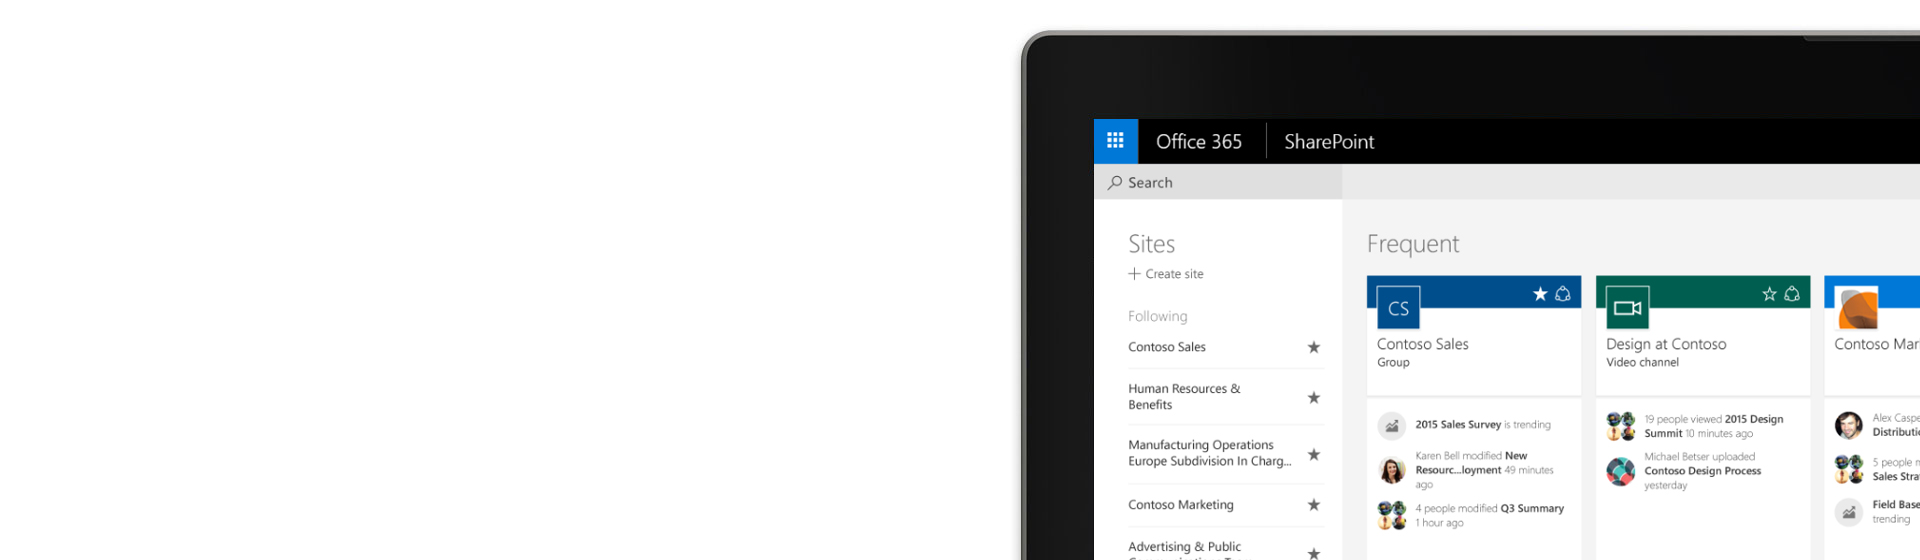 The corner of a laptop screen displaying Office 365 SharePoint for Contoso